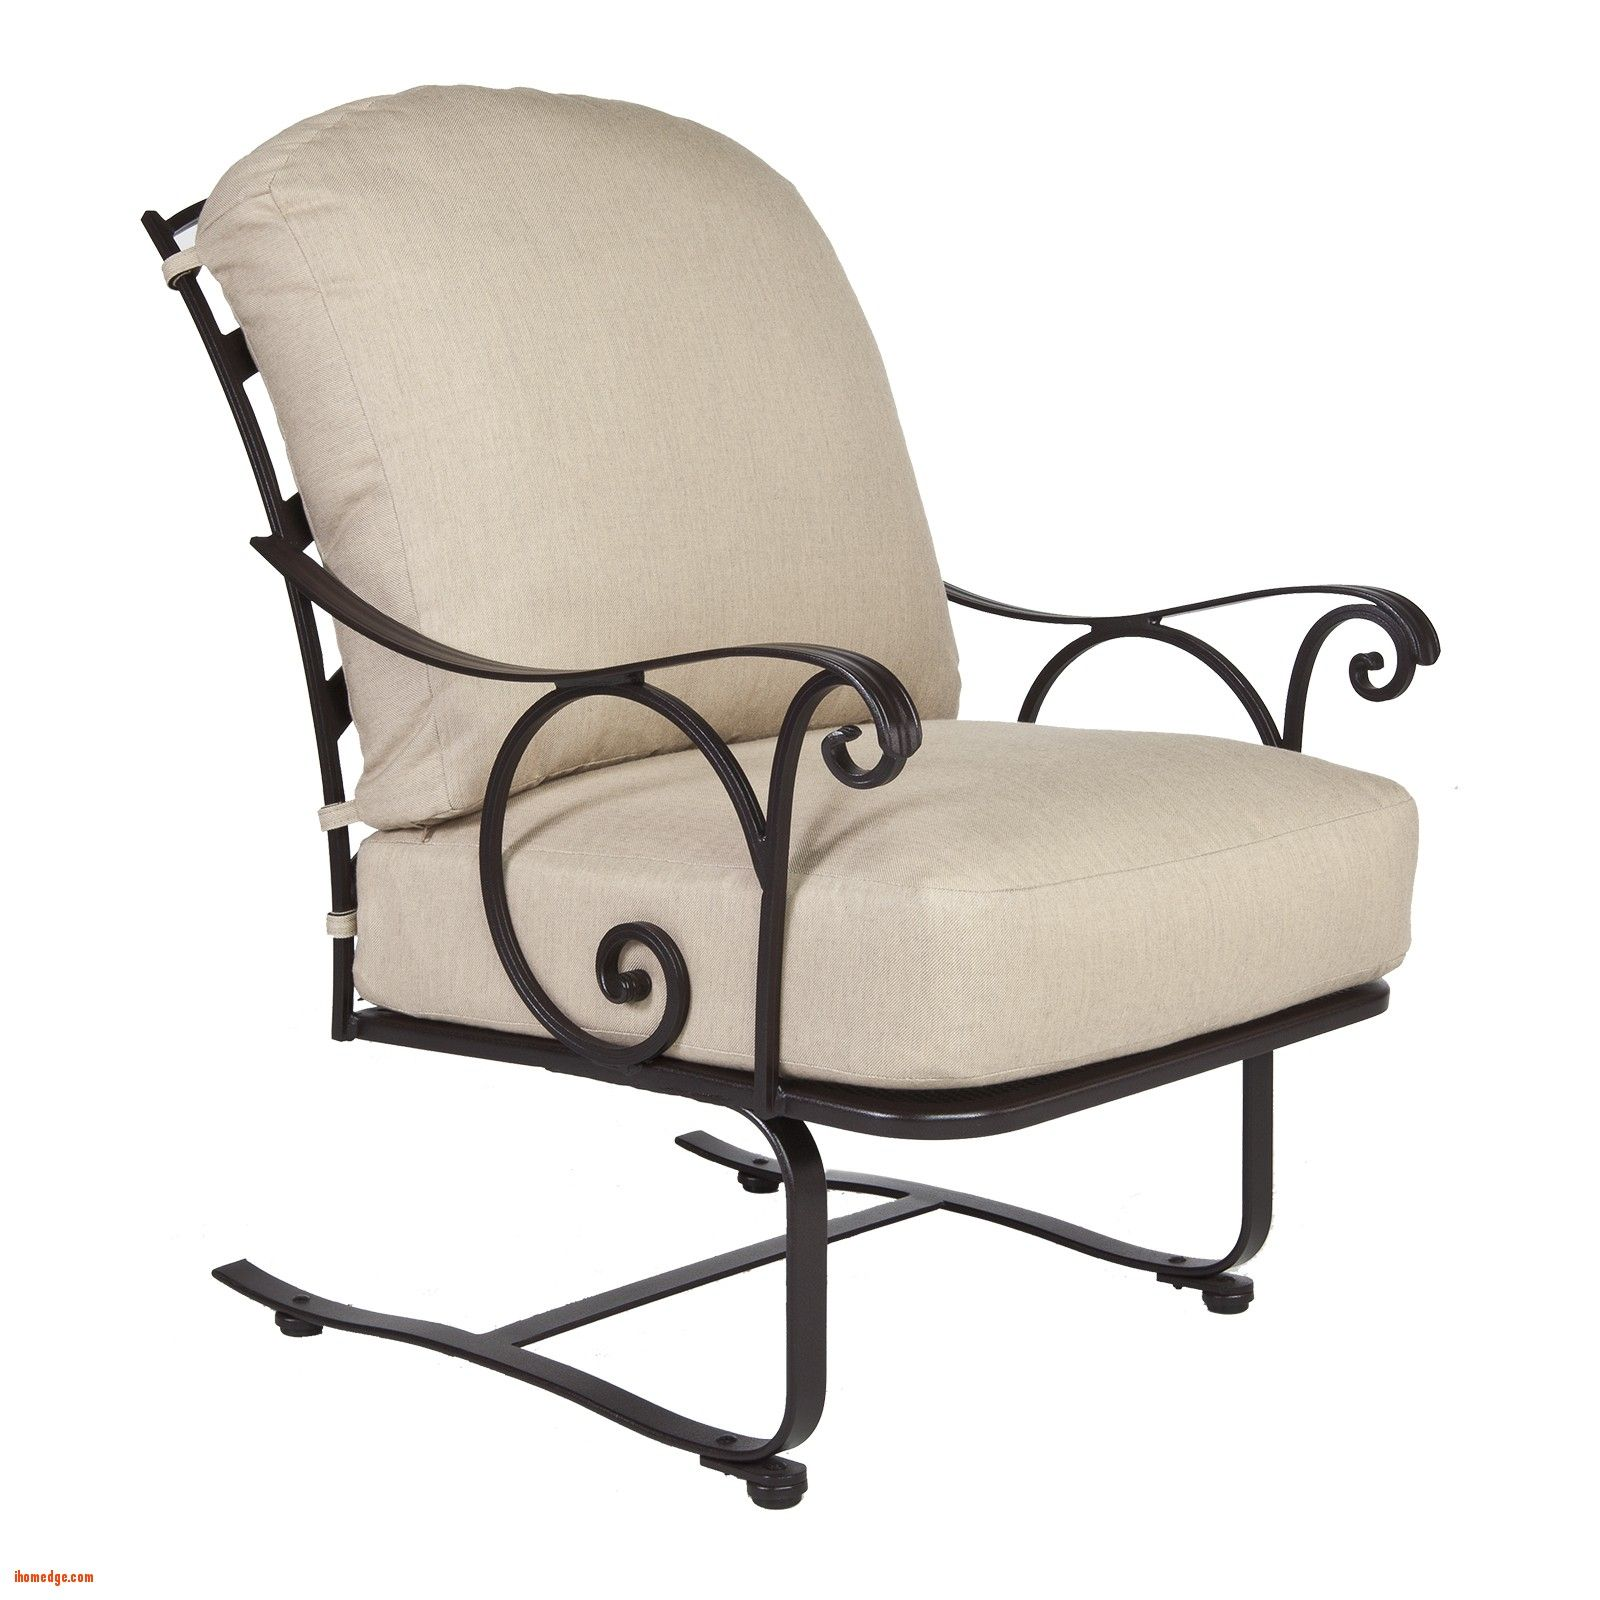 Inspirational Wonderful Ow Lee Patio Furniture OW Lee Siena  19340acd47d167fecbf457ffd8580ad3 681732462315254327